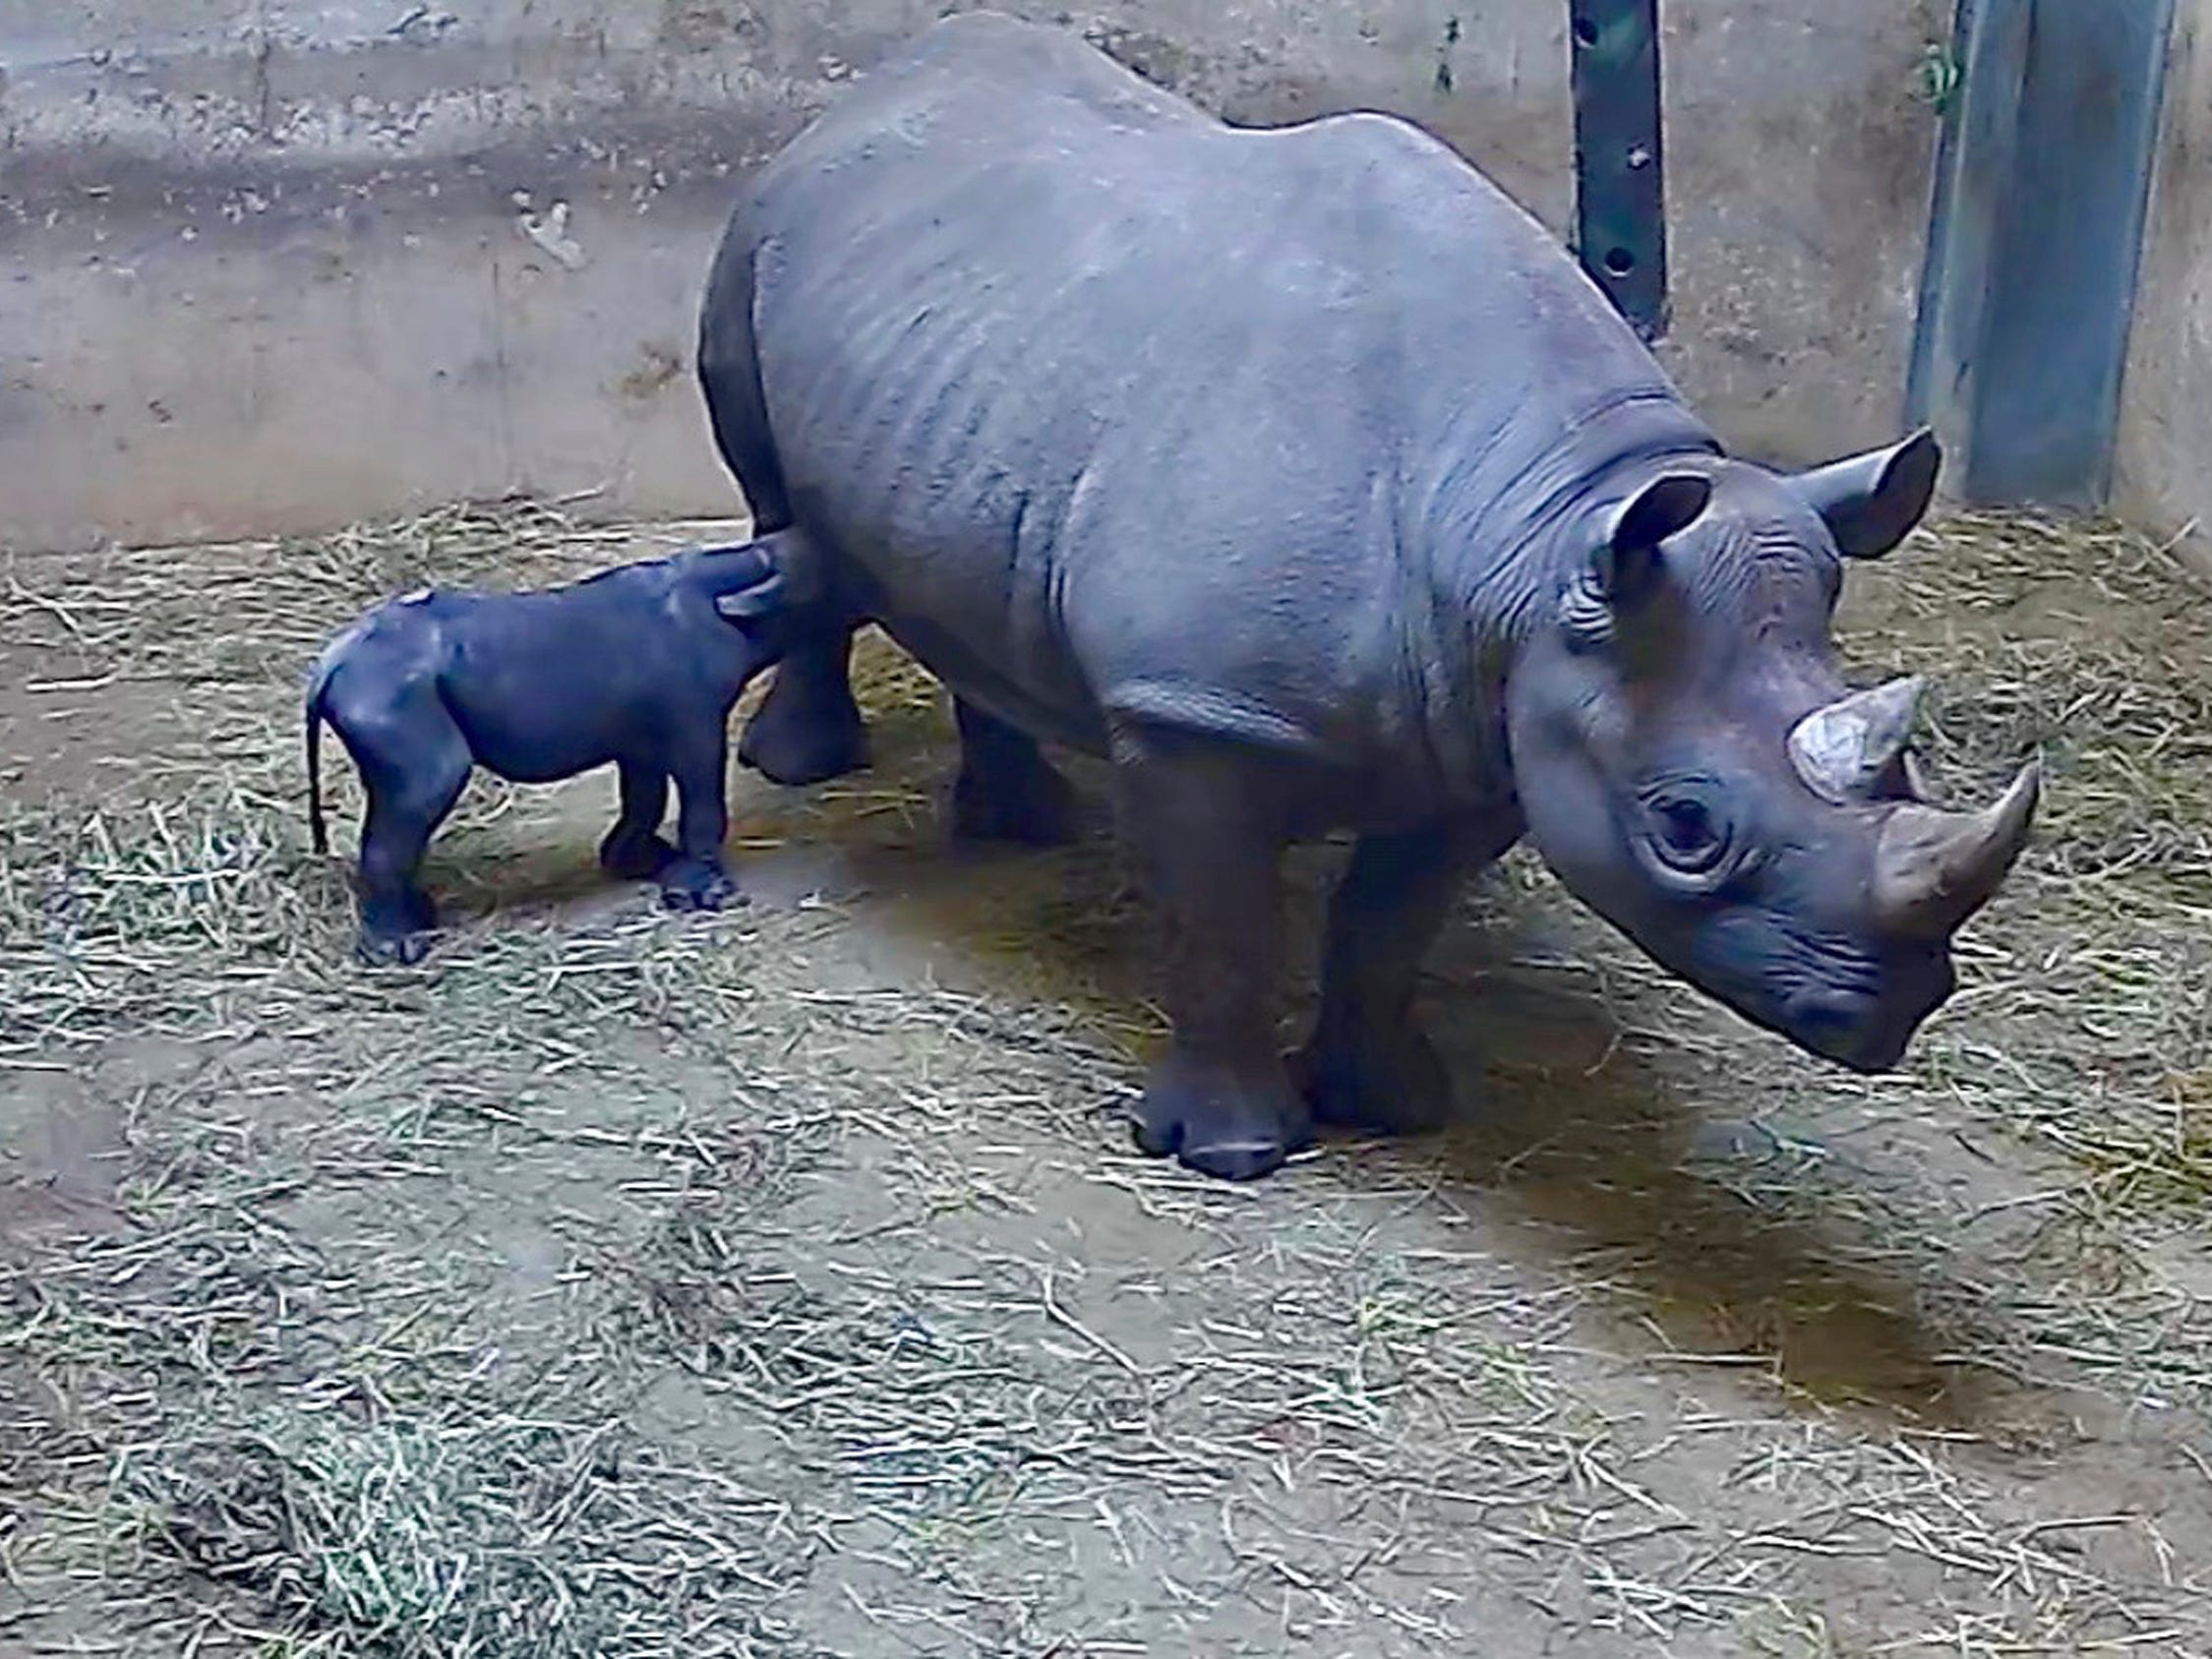 This May 19, 2019 image from video provided by the Lincoln Park Zoo shows Kapuki, an eastern black rhino, nursing her new born calf at the zoo in Chicago. The zoo says Kapuki was pregnant for 15 months before the calf was born Sunday night. Zoo staff members monitored her labor and are watching the rhino and her calf remotely using cameras to give them privacy but are nearby.